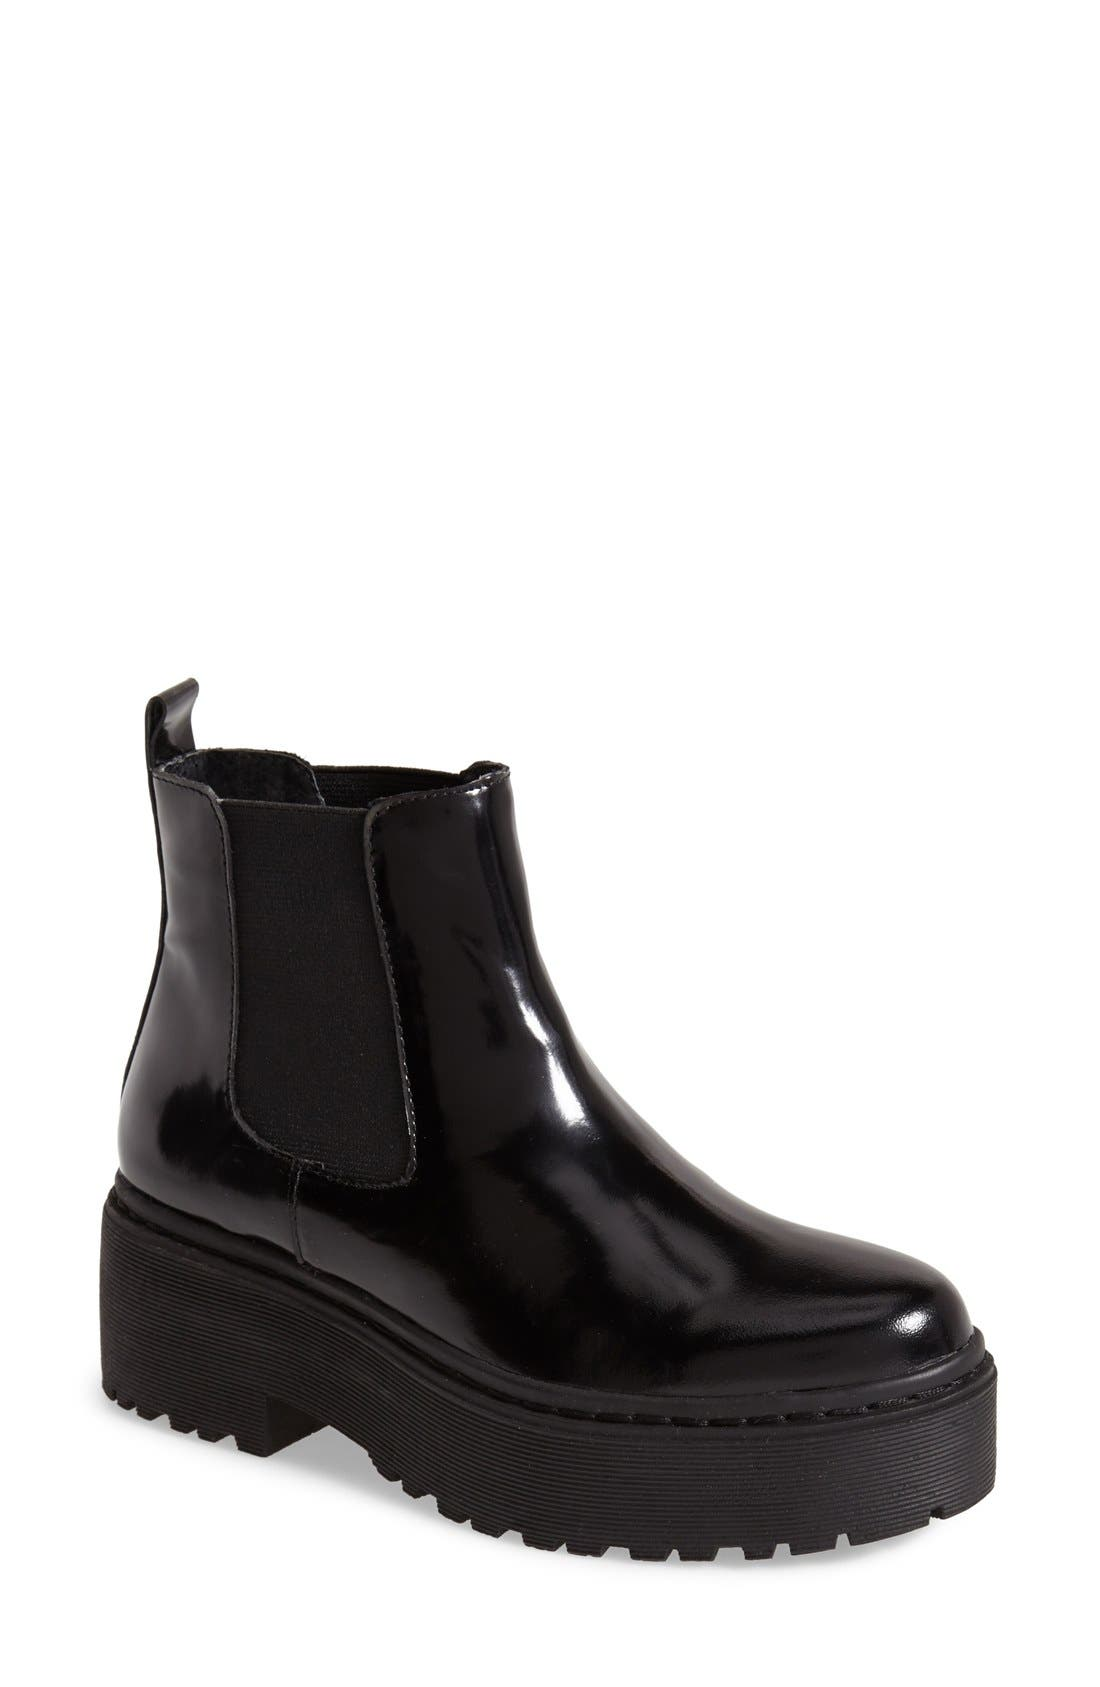 JEFFREY CAMPBELL 'Universal' Chelsea Boot, Main, color, 001